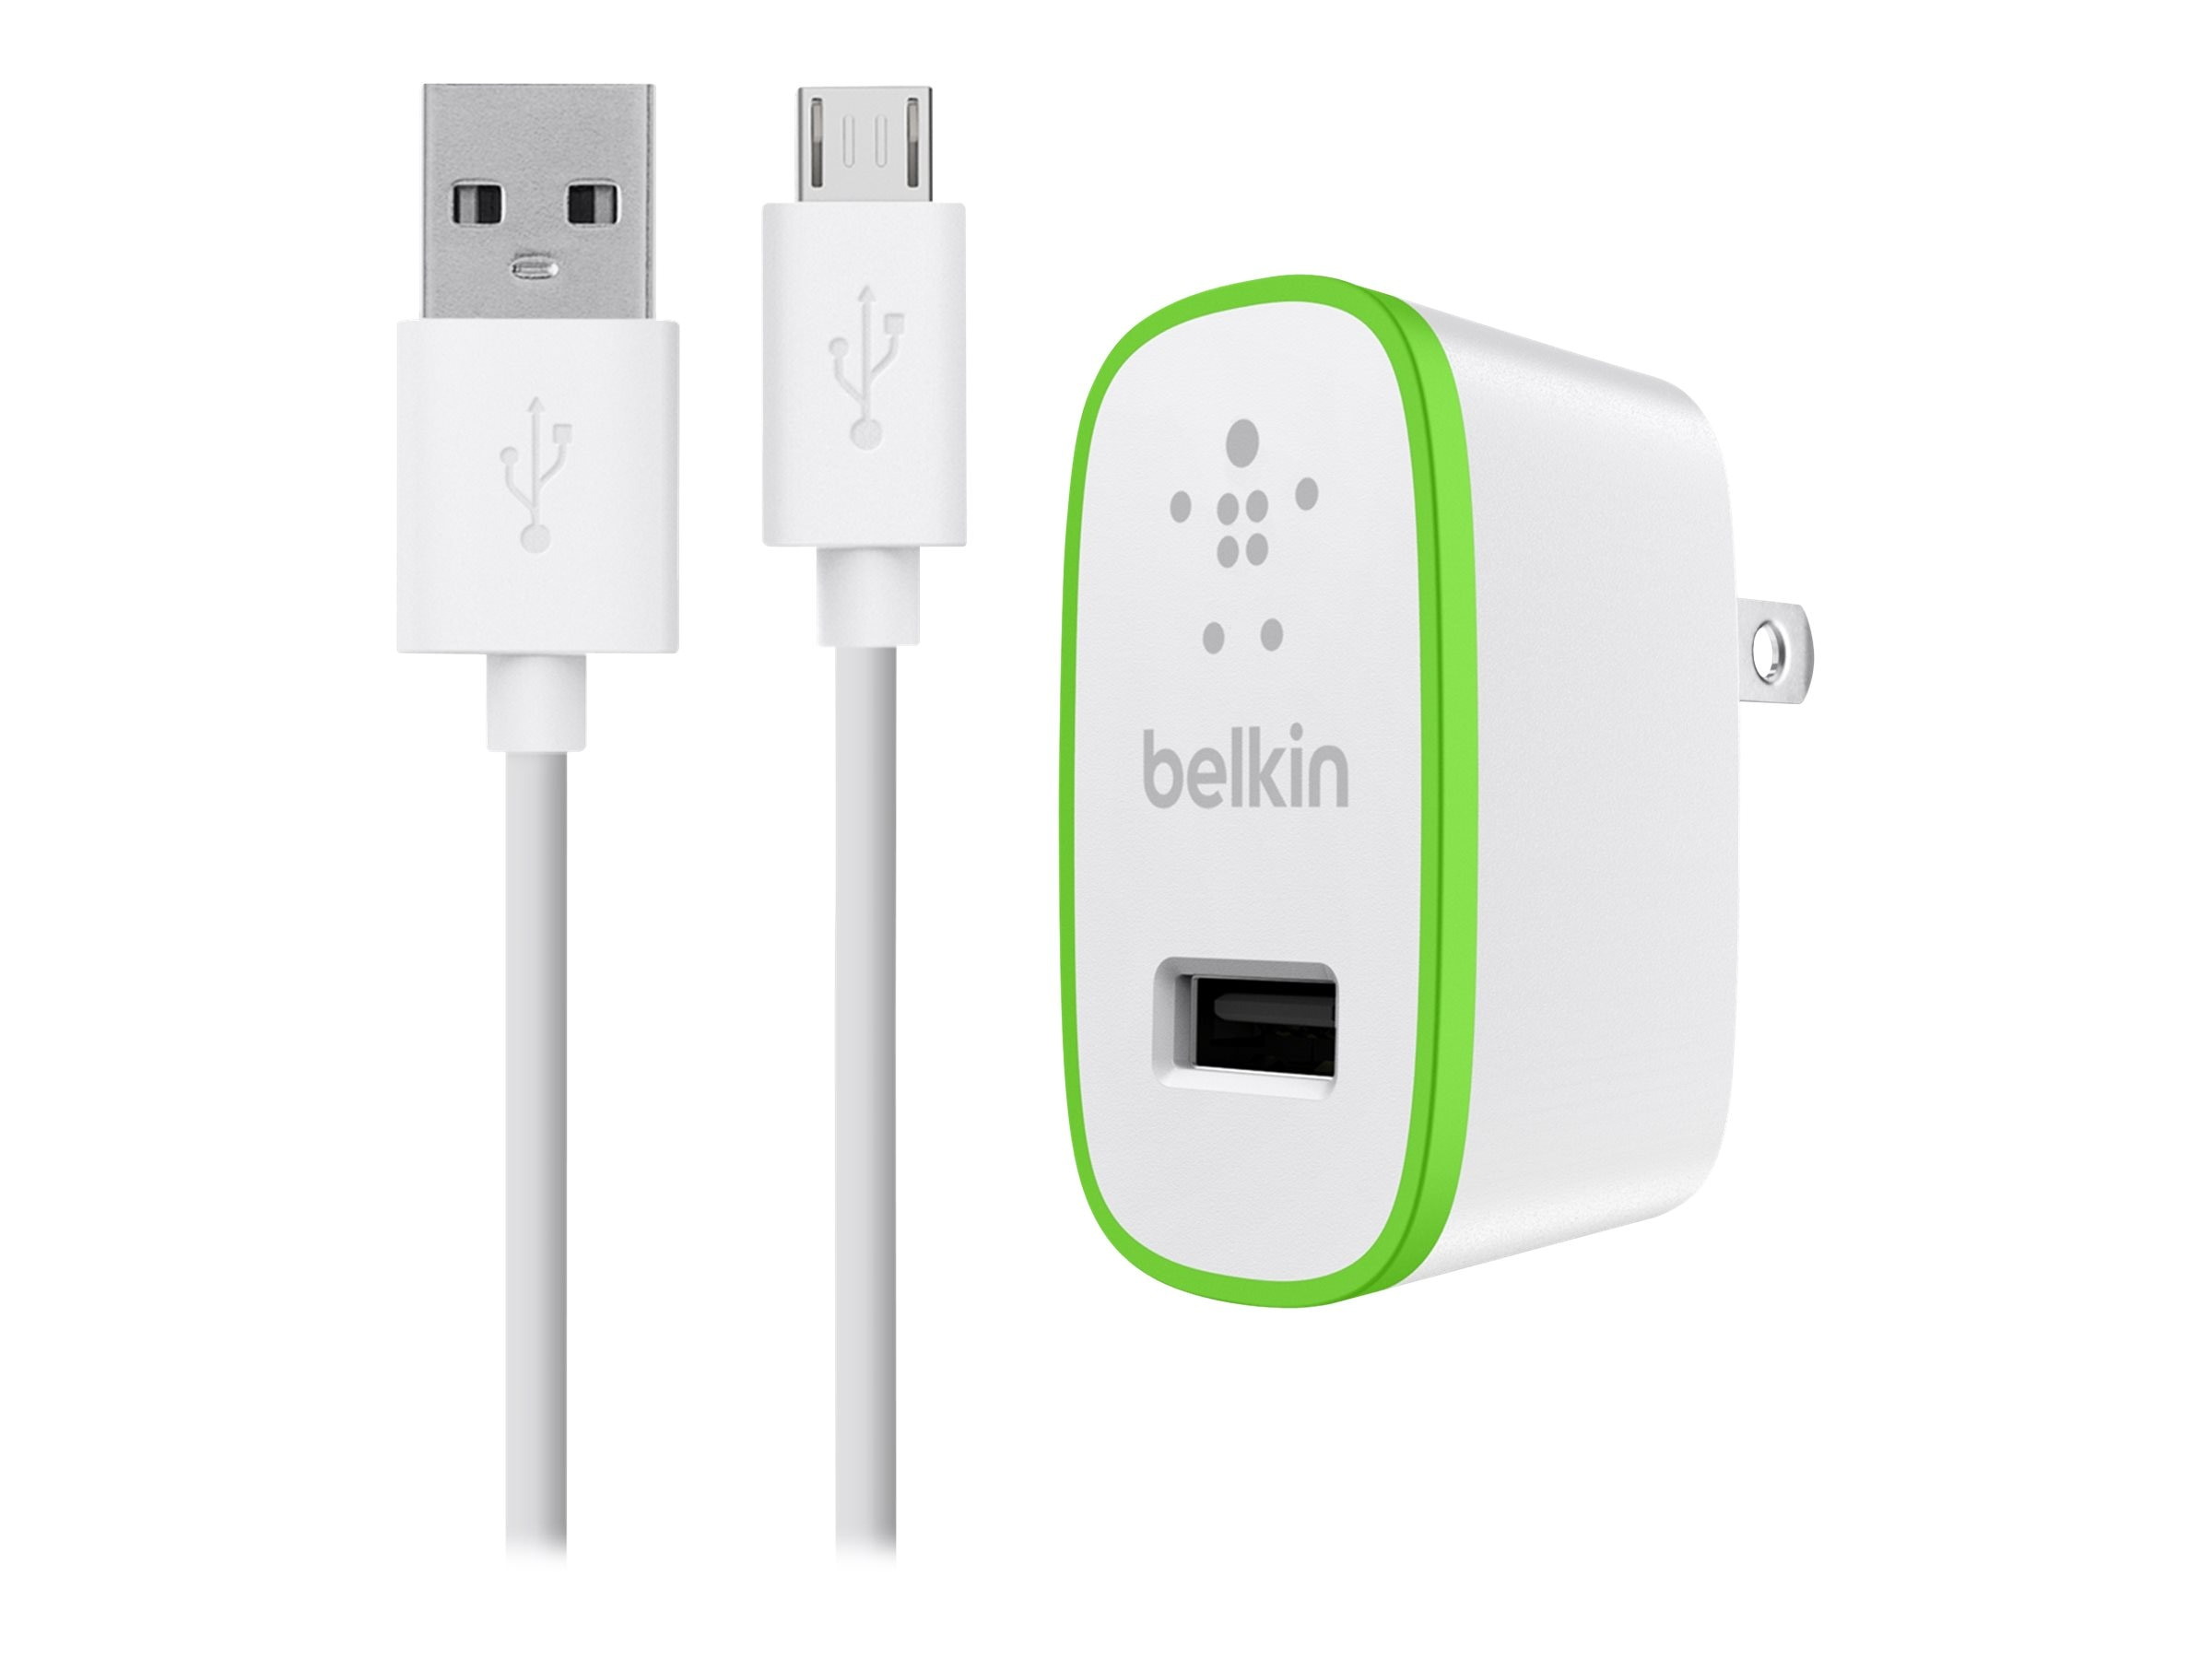 Belkin Universal Home Charger, Micro-USB Charge Sync Cable, 10W 2.1A, White